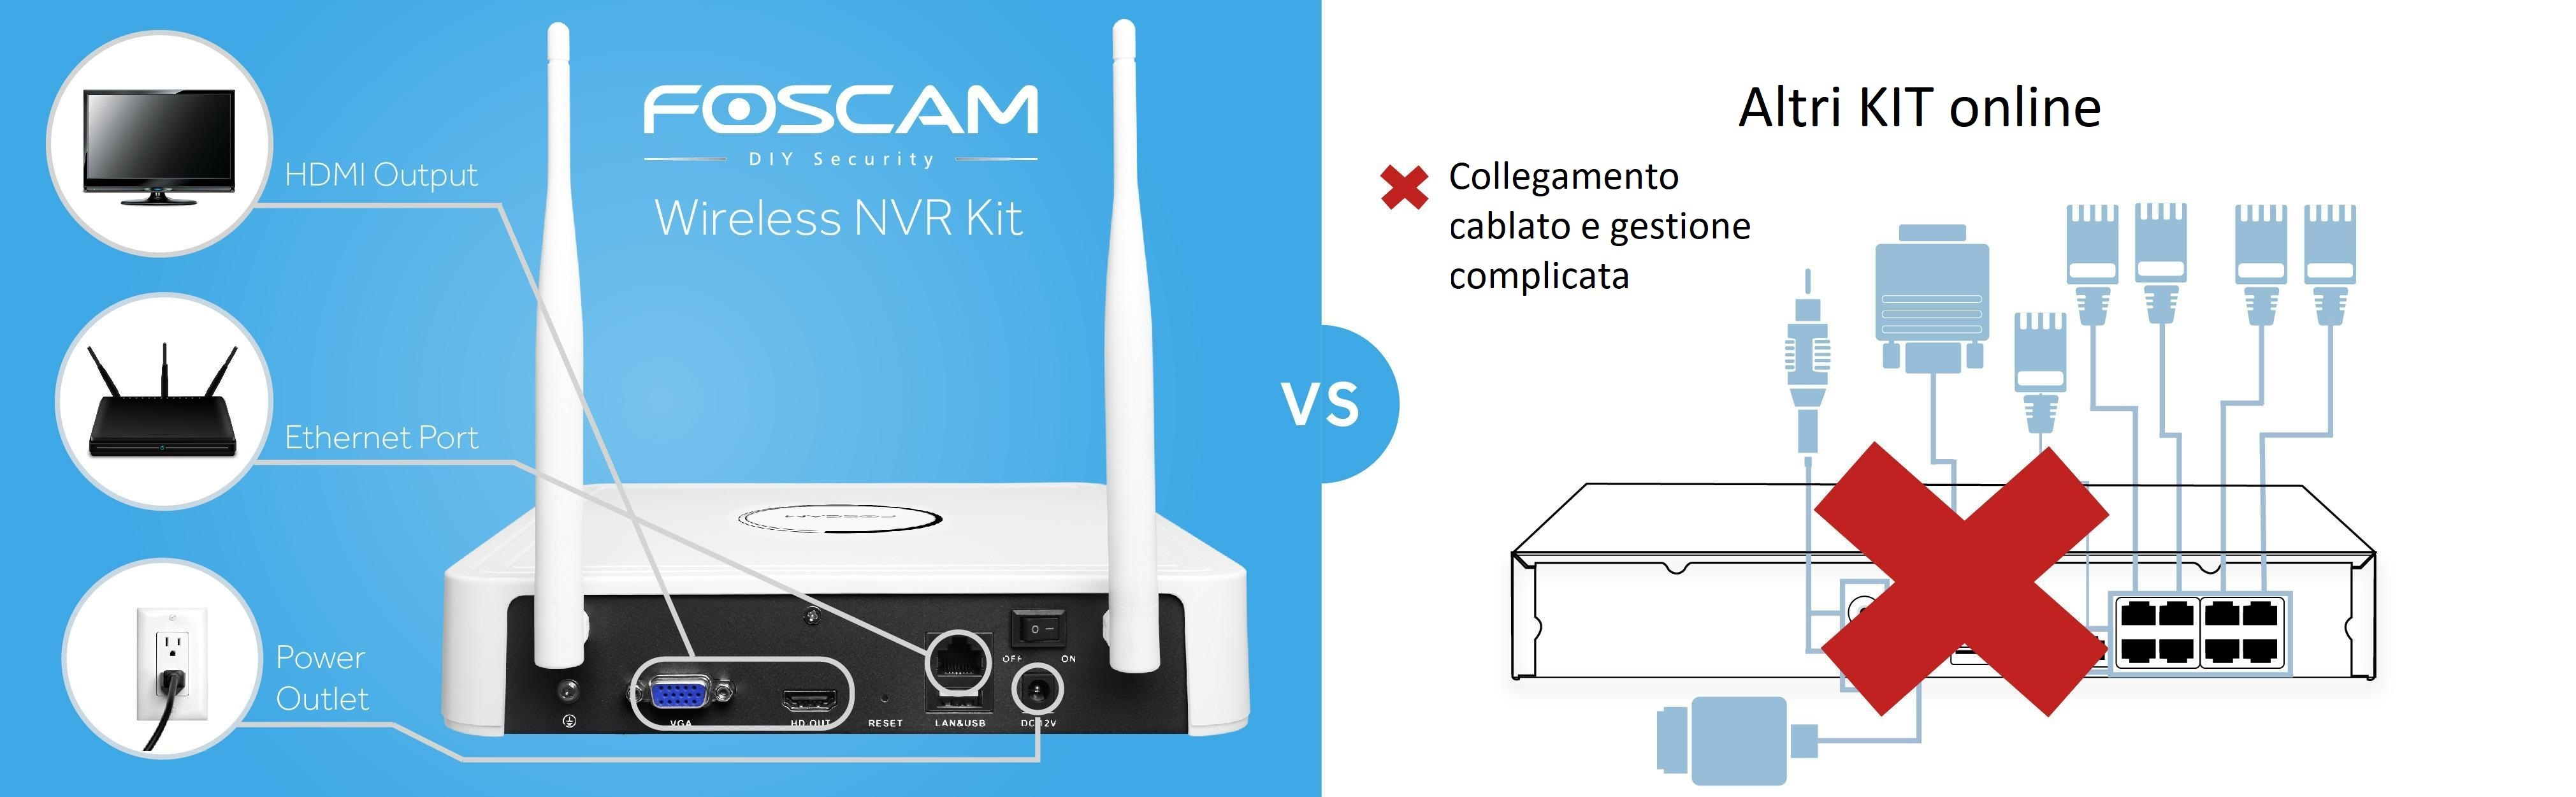 Foscam Kit wireless 4 canali wireless